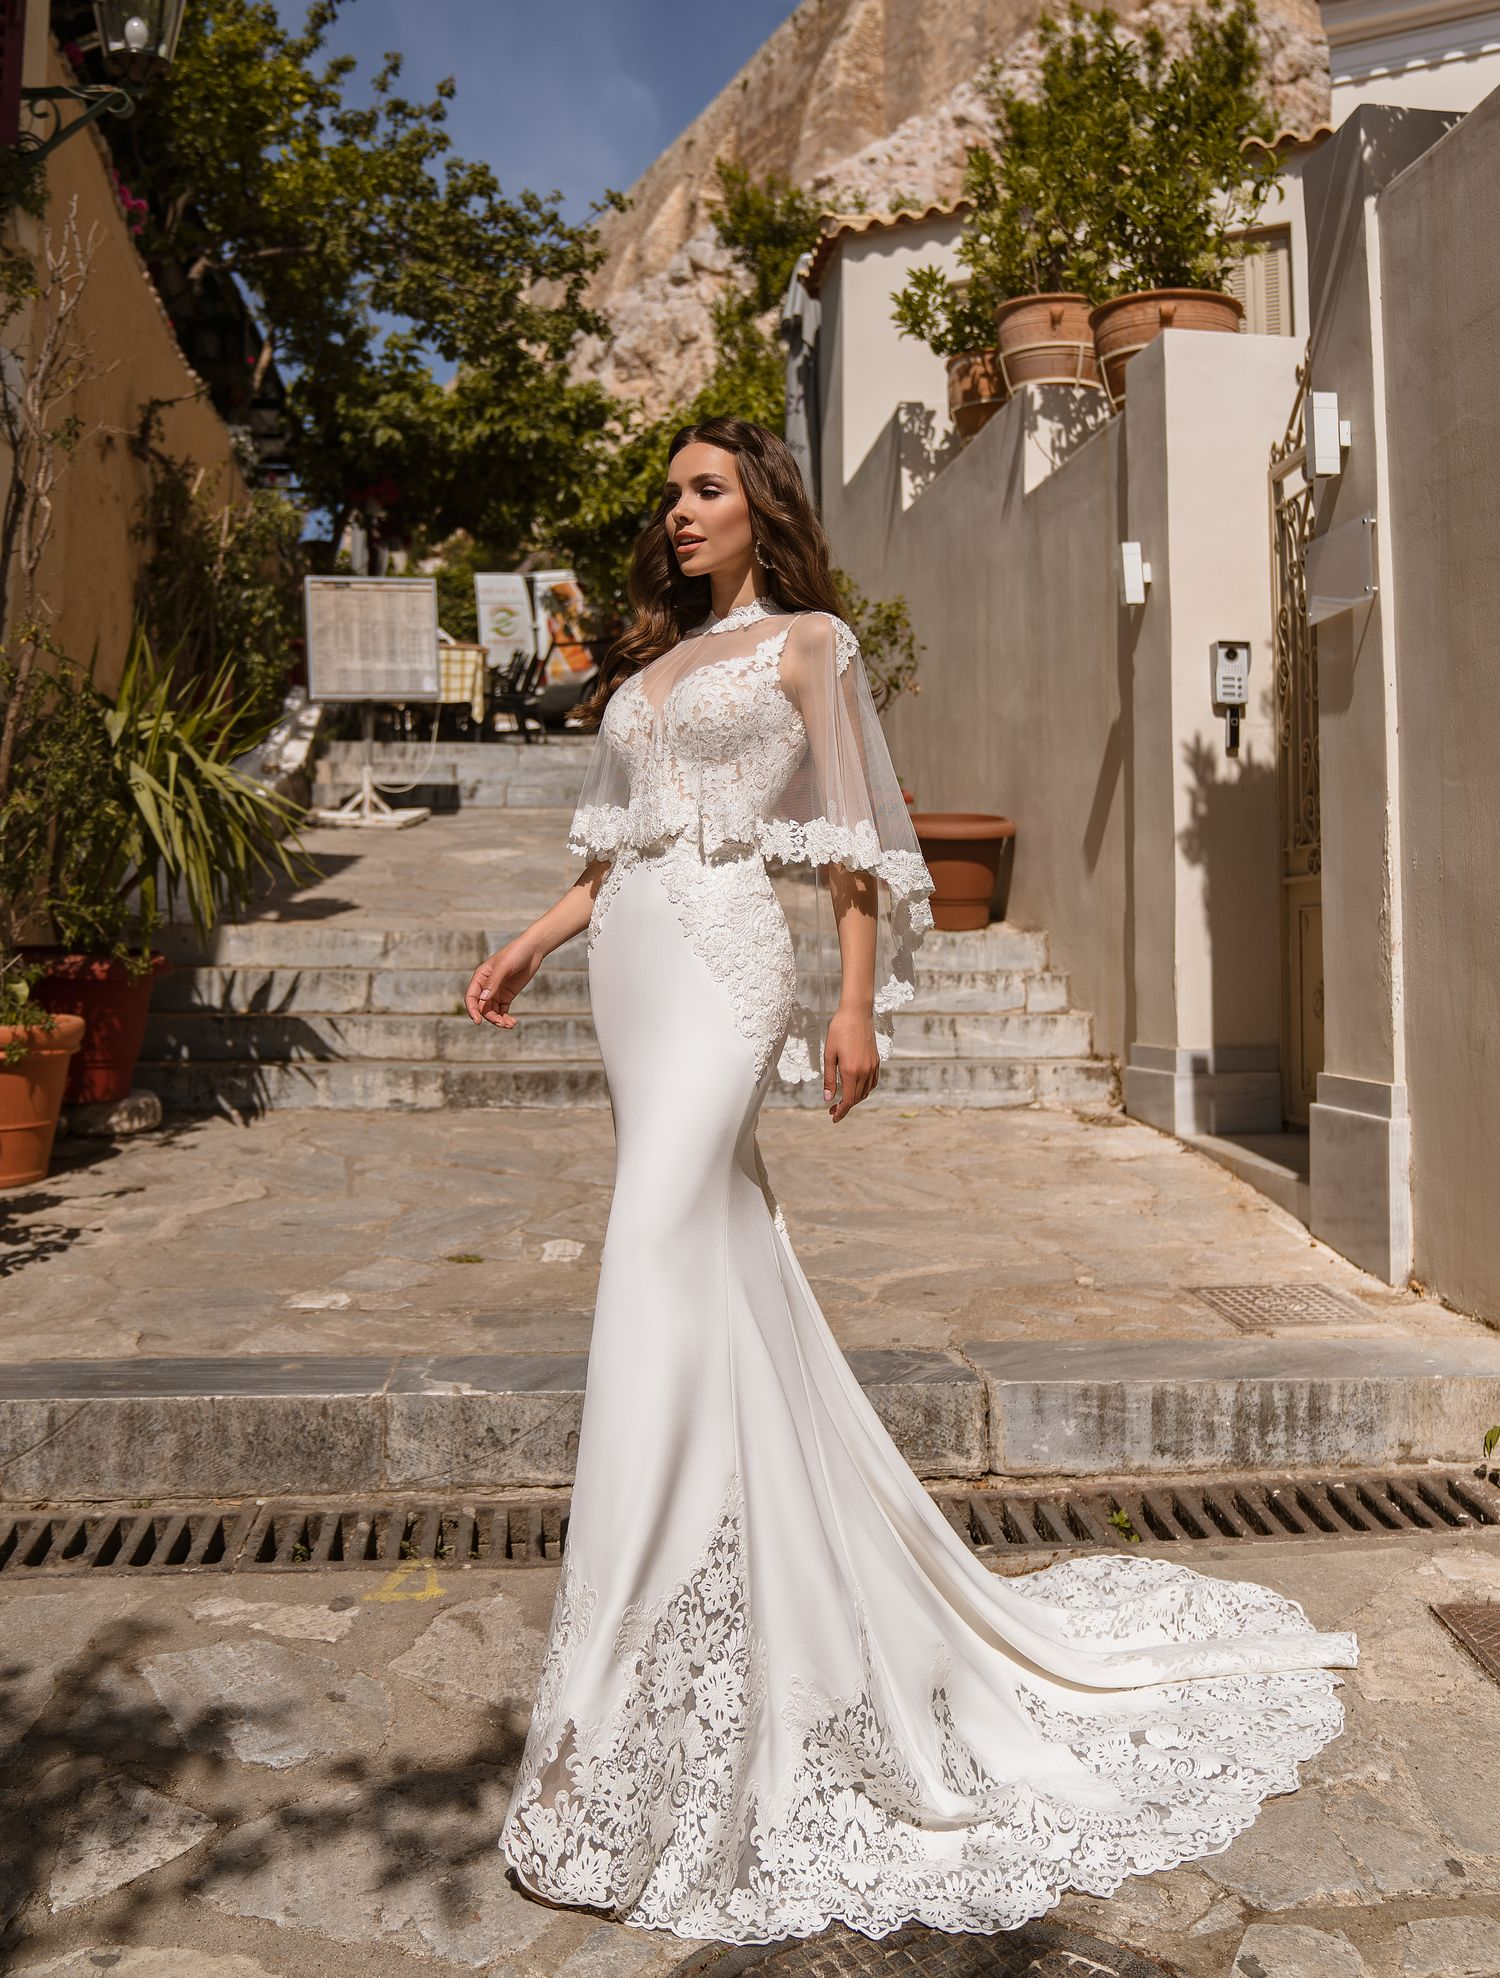 Wedding dress with cape wholesale from manufacturer Supernova-1